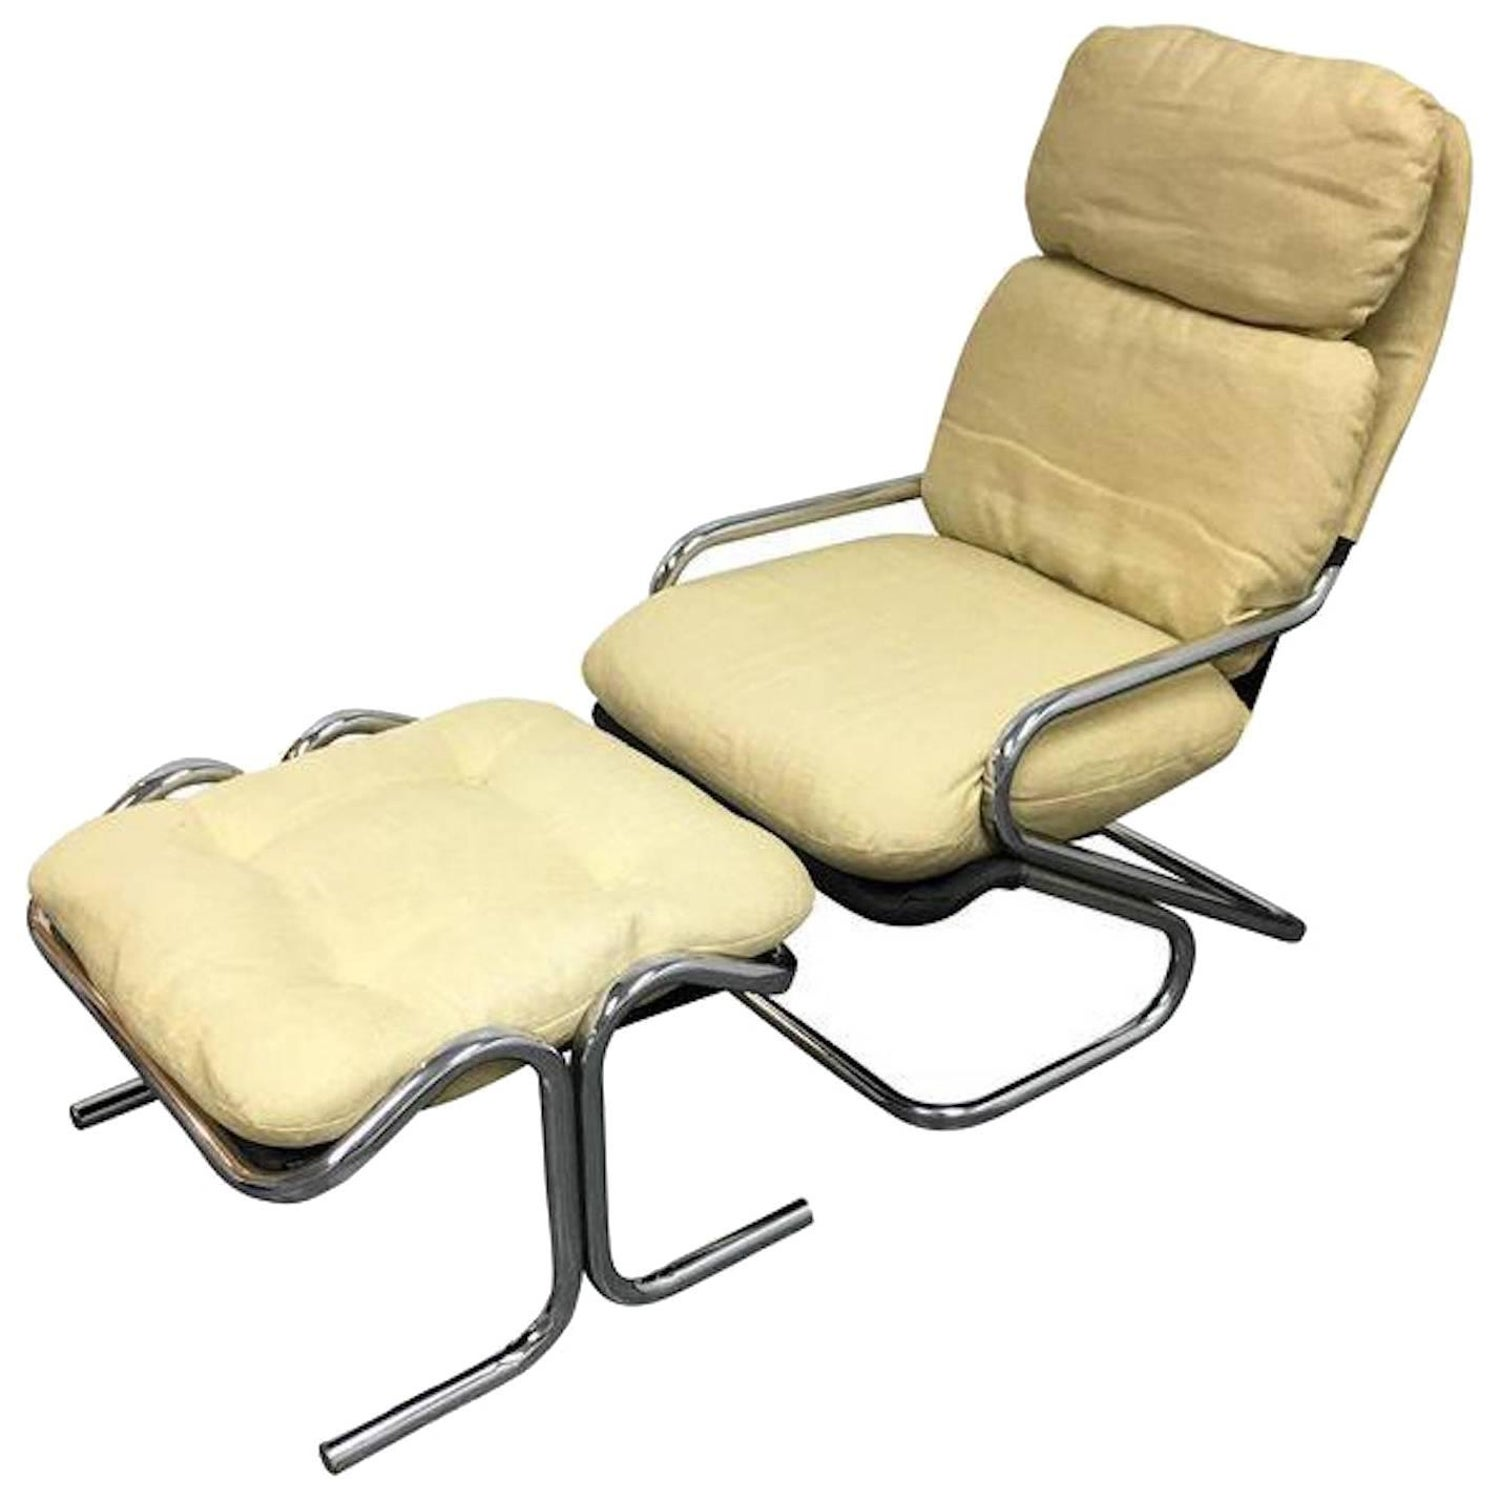 jerry johnson landes manufacturing company sling chair ottoman at